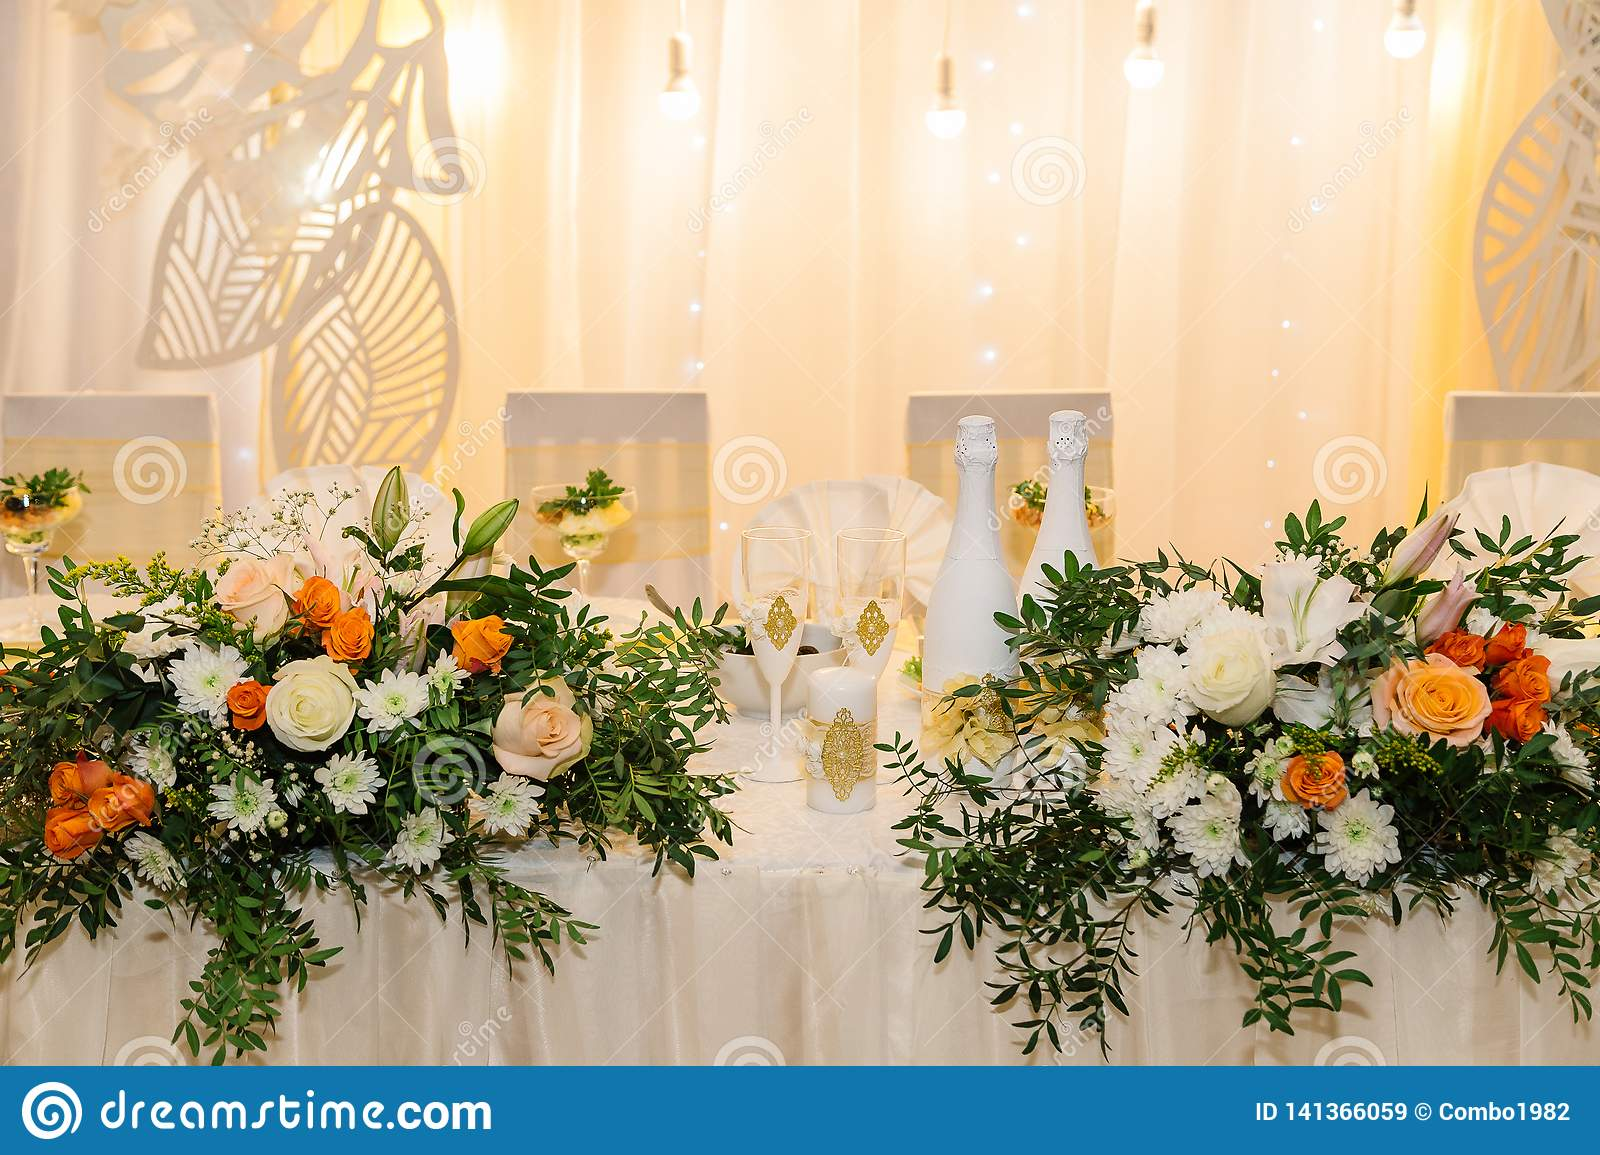 Wedding Decor Table For The Newlyweds Outdoor Wedding Reception